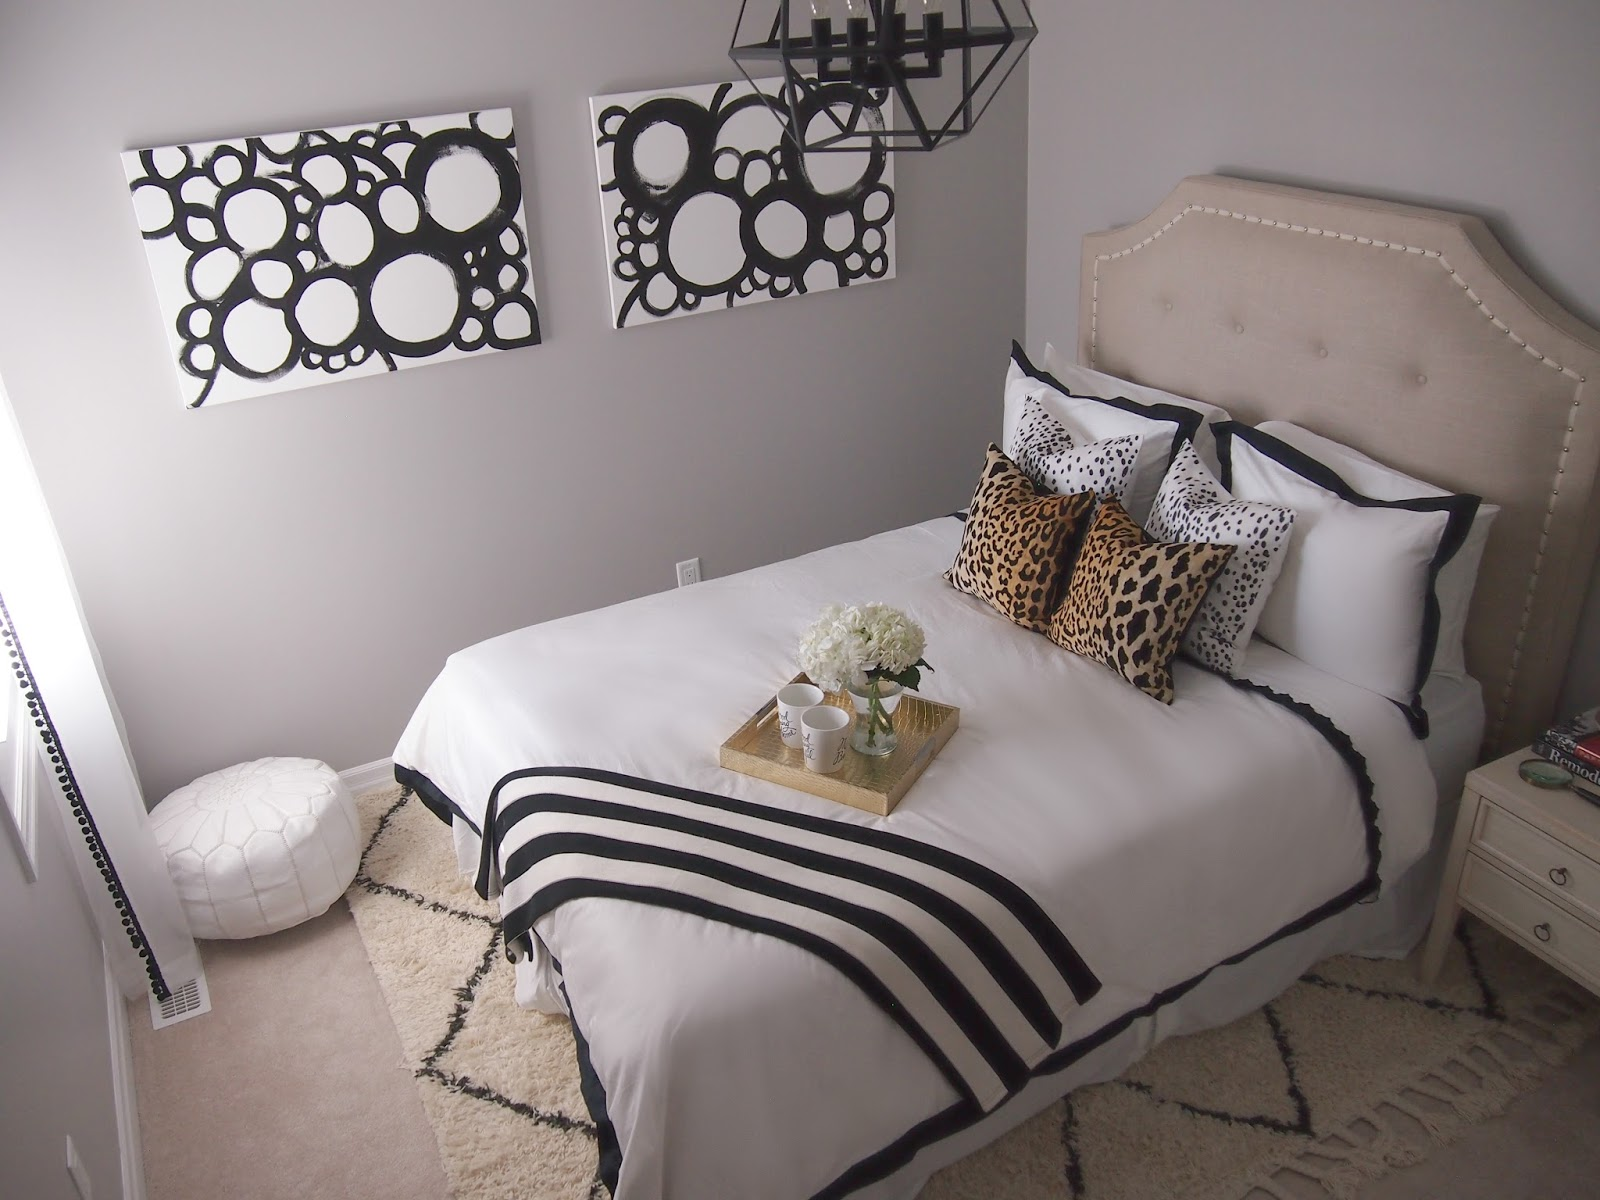 Spectacular Headboard Homesense Table Target Lamp Target Magnifying Glass Target similar Candle Diptyque Rug Rugs USA Bedding Crane and Canopy